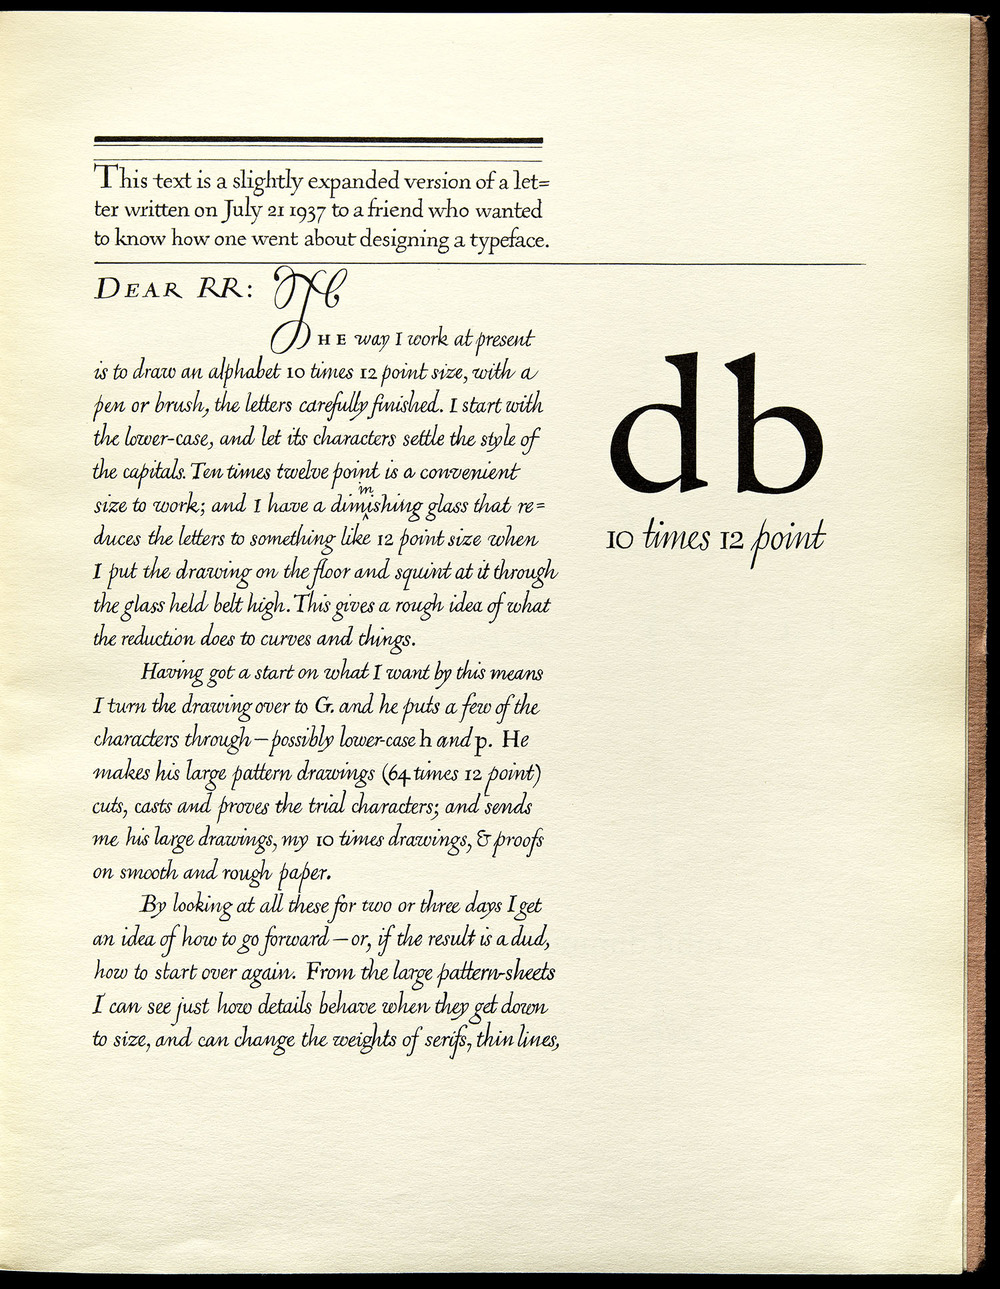 WAD to RR: A Letter About Designing Type , Harvard, Cambridge, 1940, 10.8 x 16.5 cm